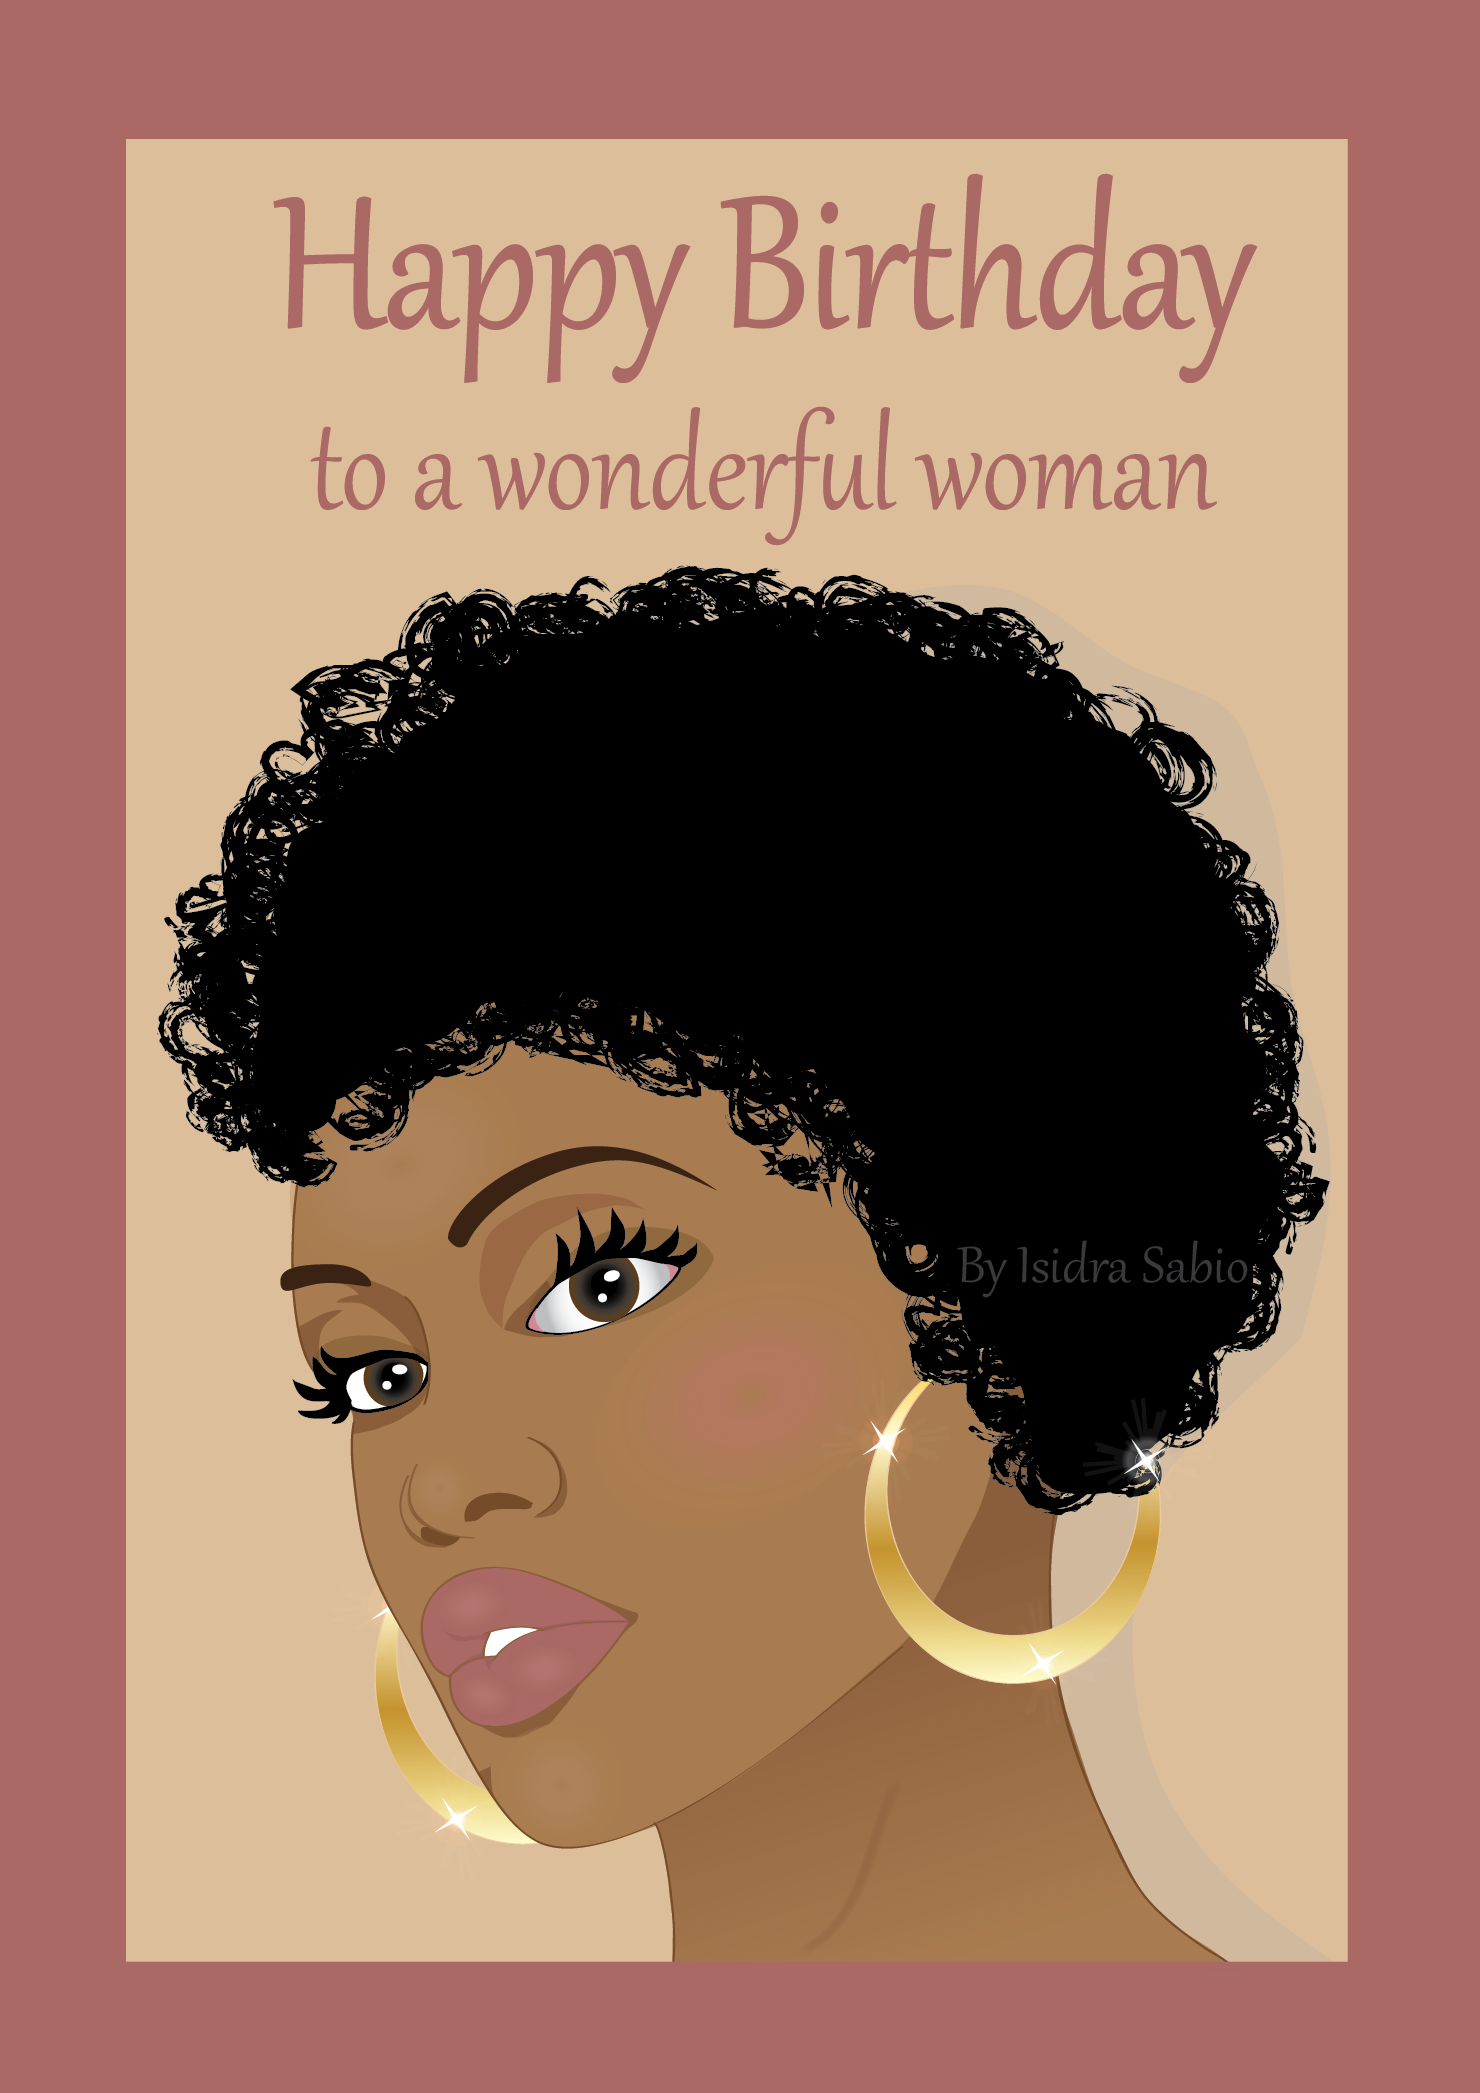 Birthday Card For Women To A Wonderful Woman With Curly Hair Card